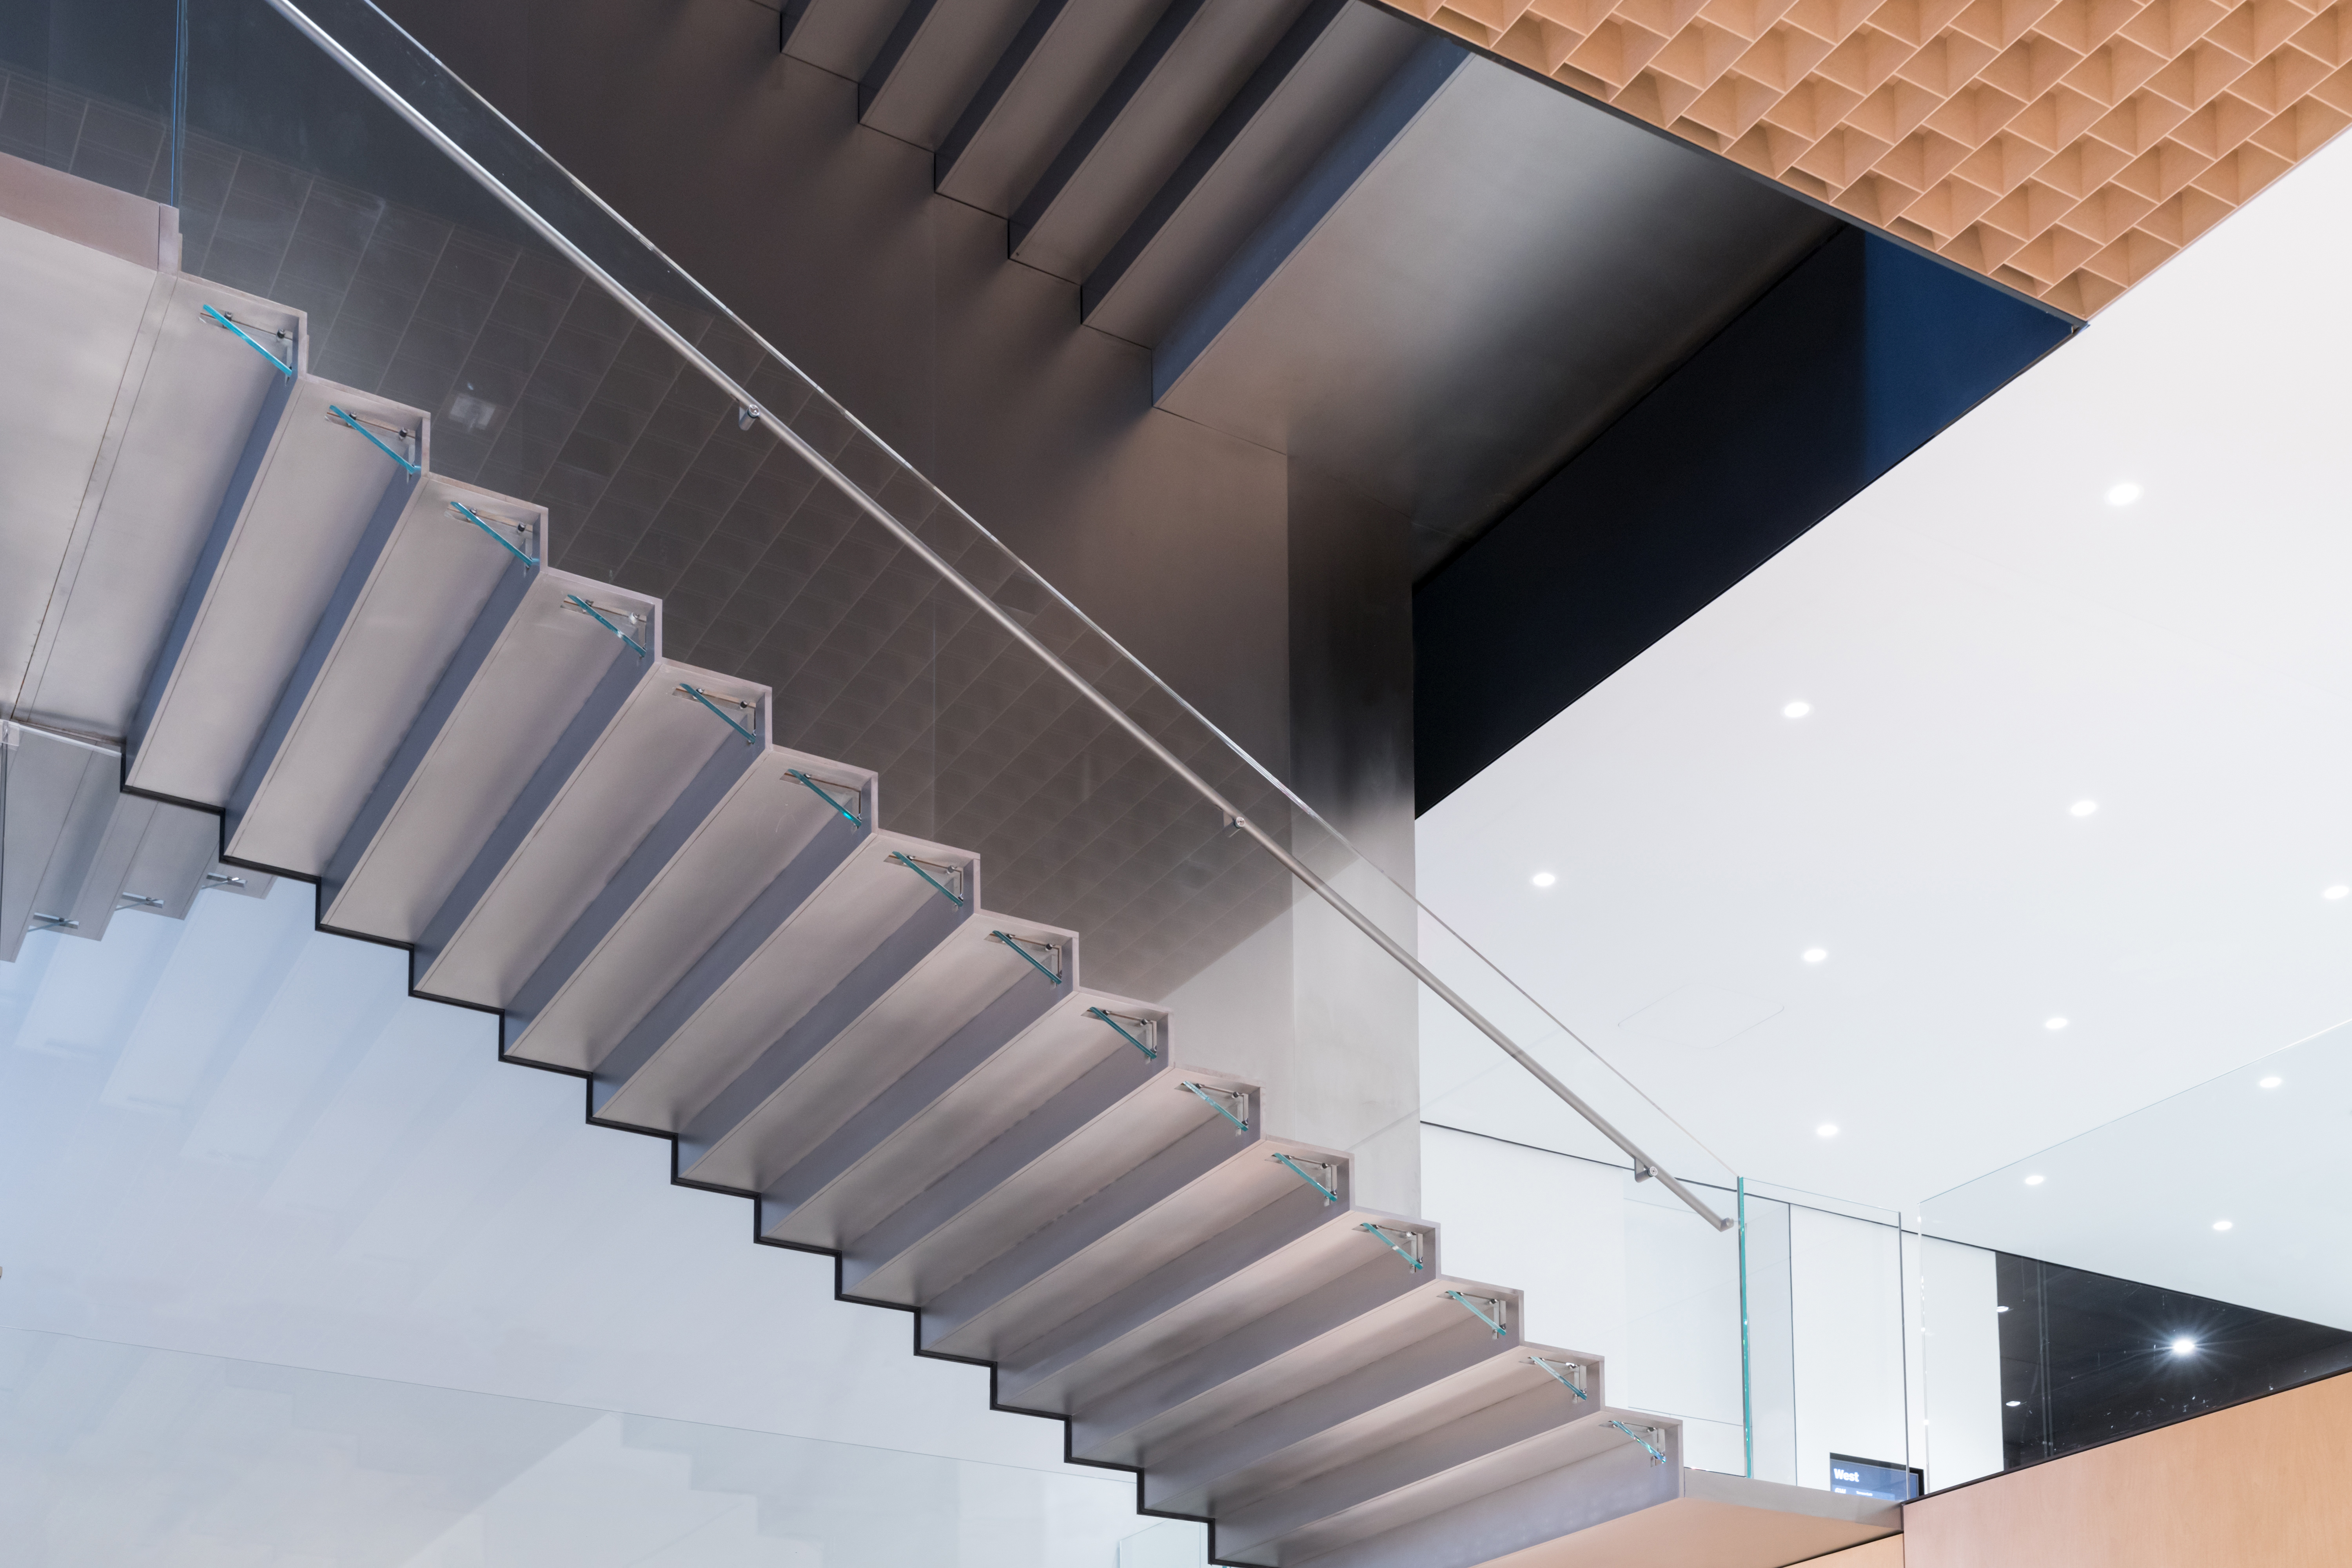 <p>MoMa Fase 2. Interior view of The Museum of Modern Art, Blade Stair, view from Flagship Museum Store Beeld Iwan Baan. Courtesey of MoMa</p>